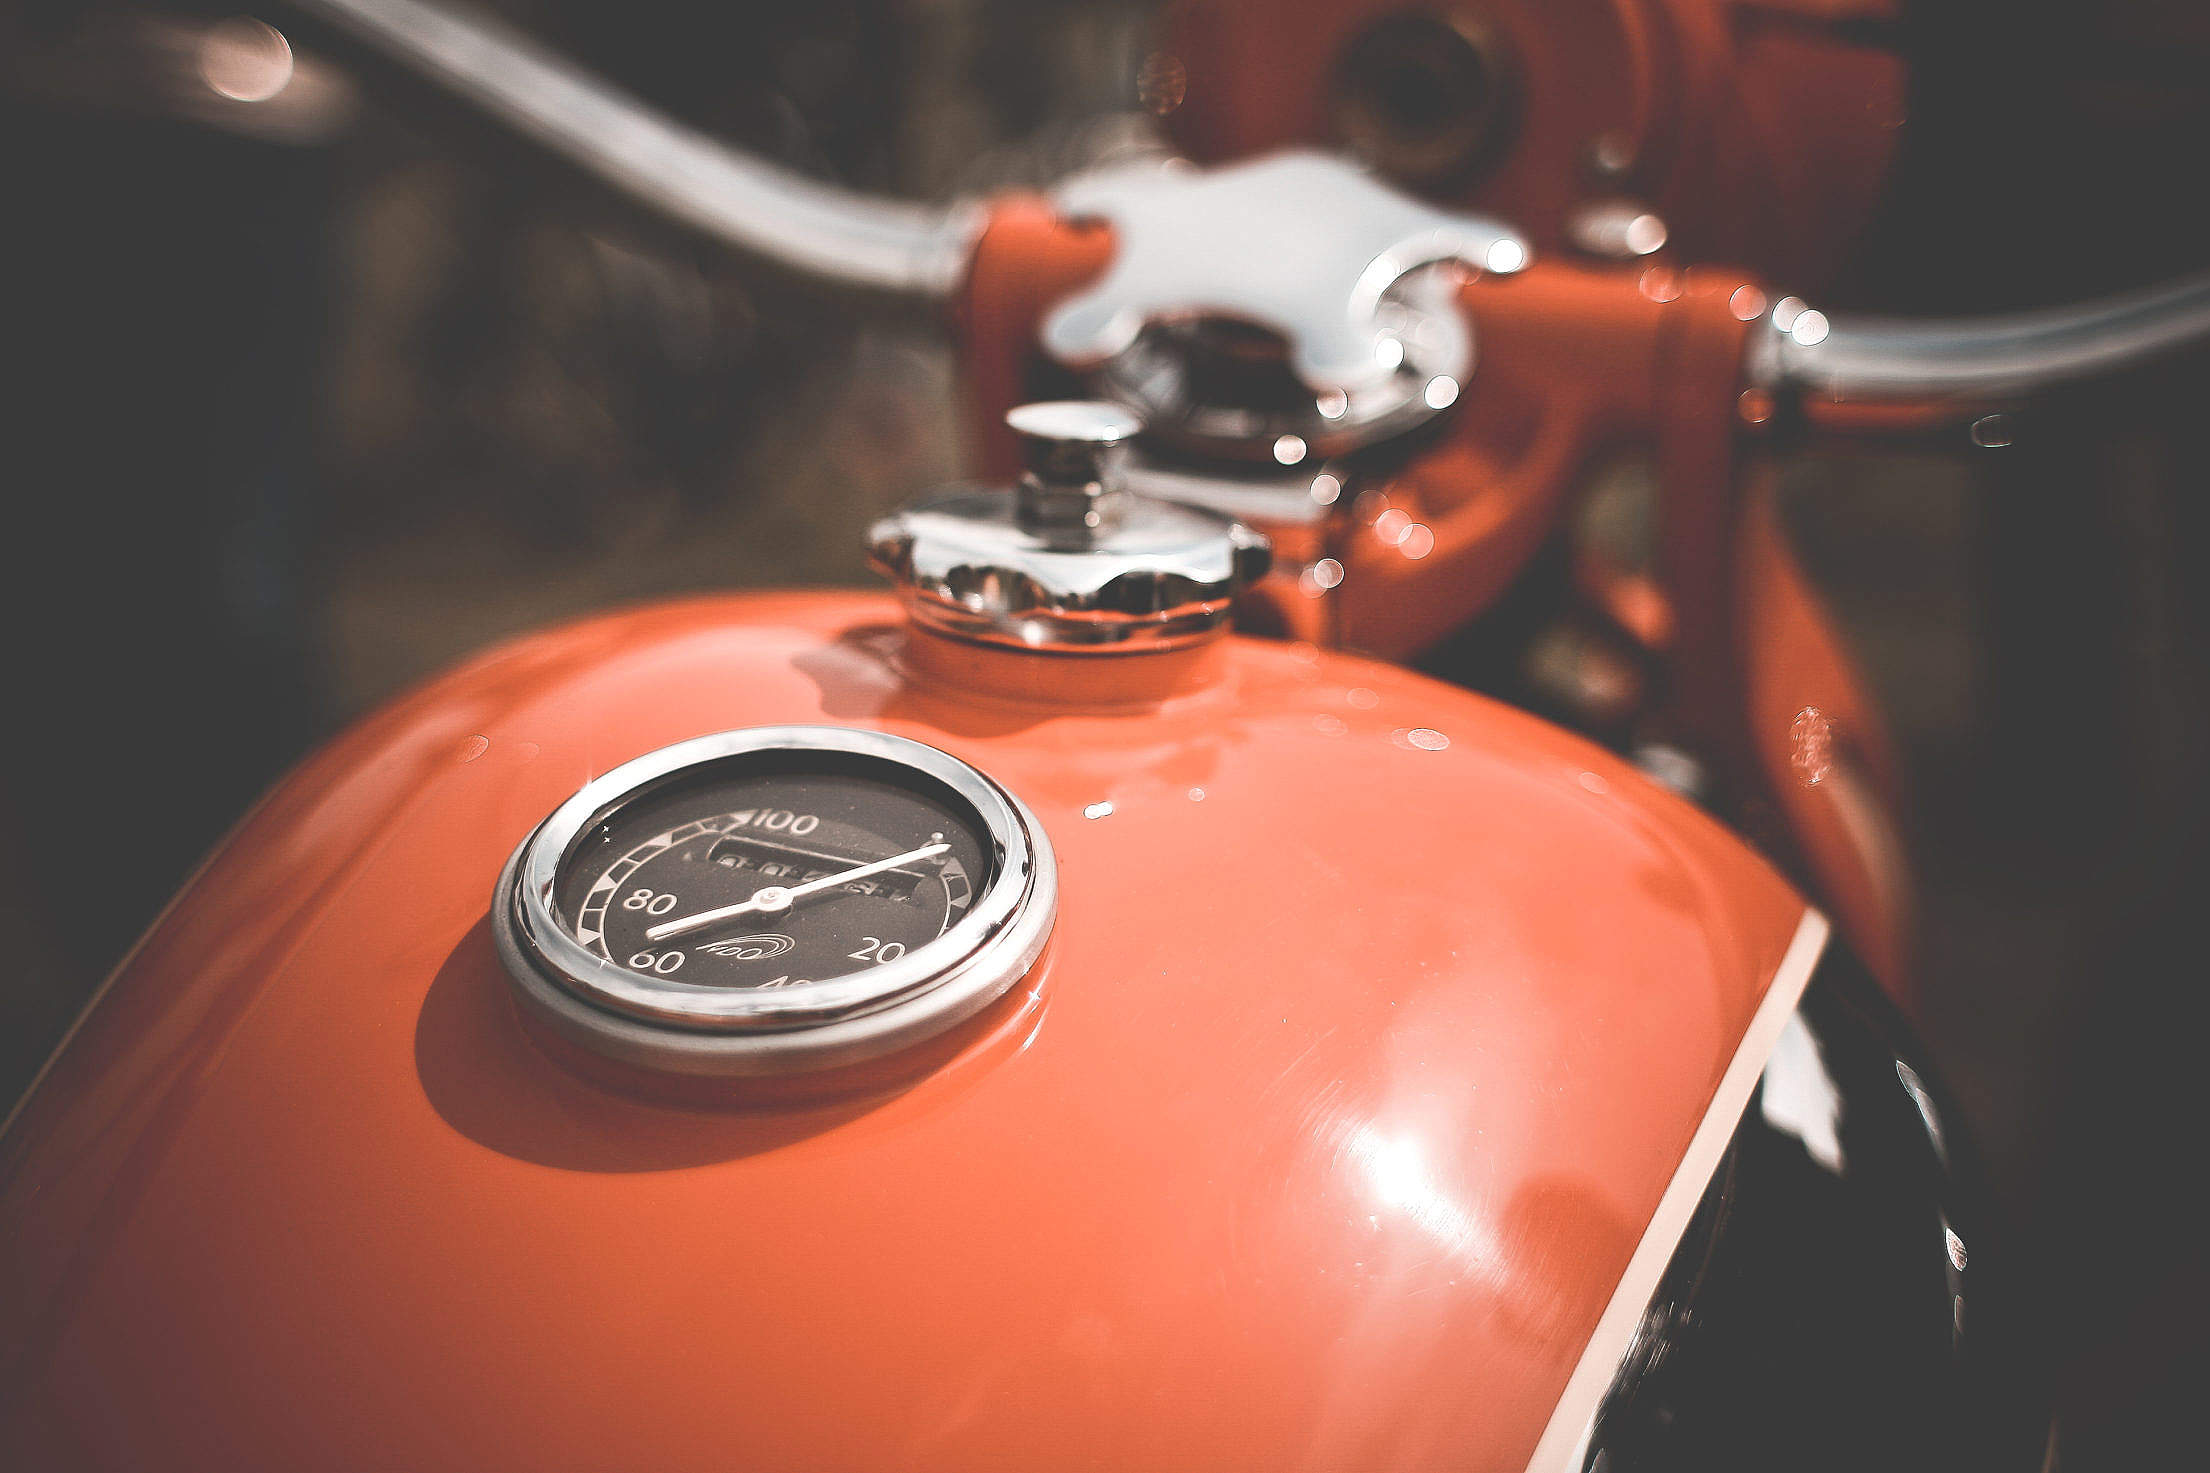 Fuel Tank on Old Retro Motorcycle Free Stock Photo